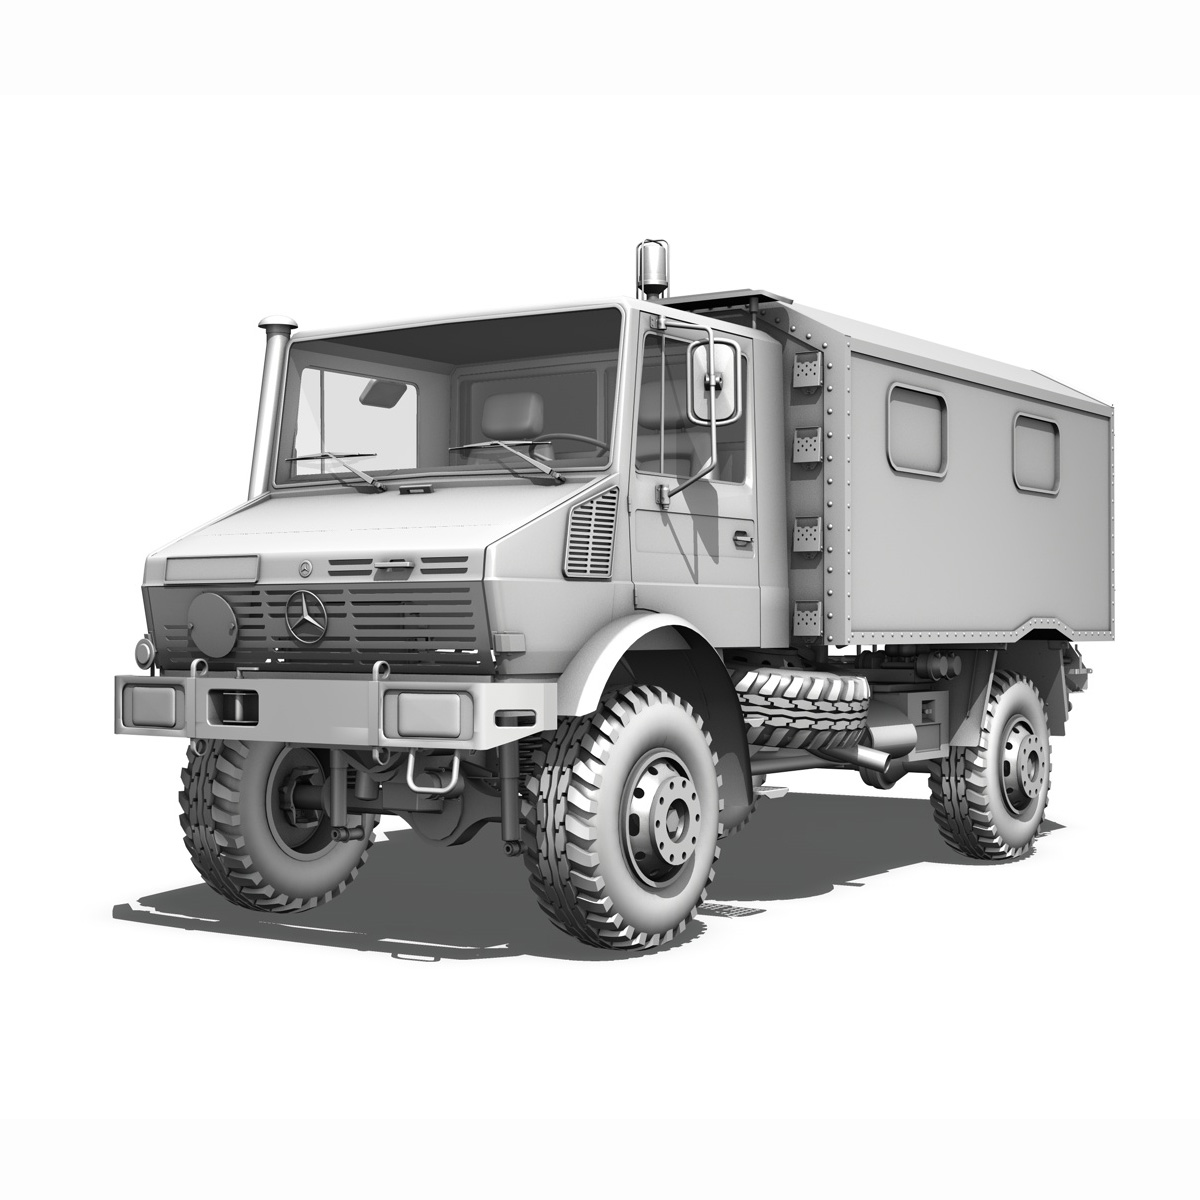 mercedes benz unimog u1300l – ambulance trailer 3d model 3ds fbx c4d lwo obj 189594